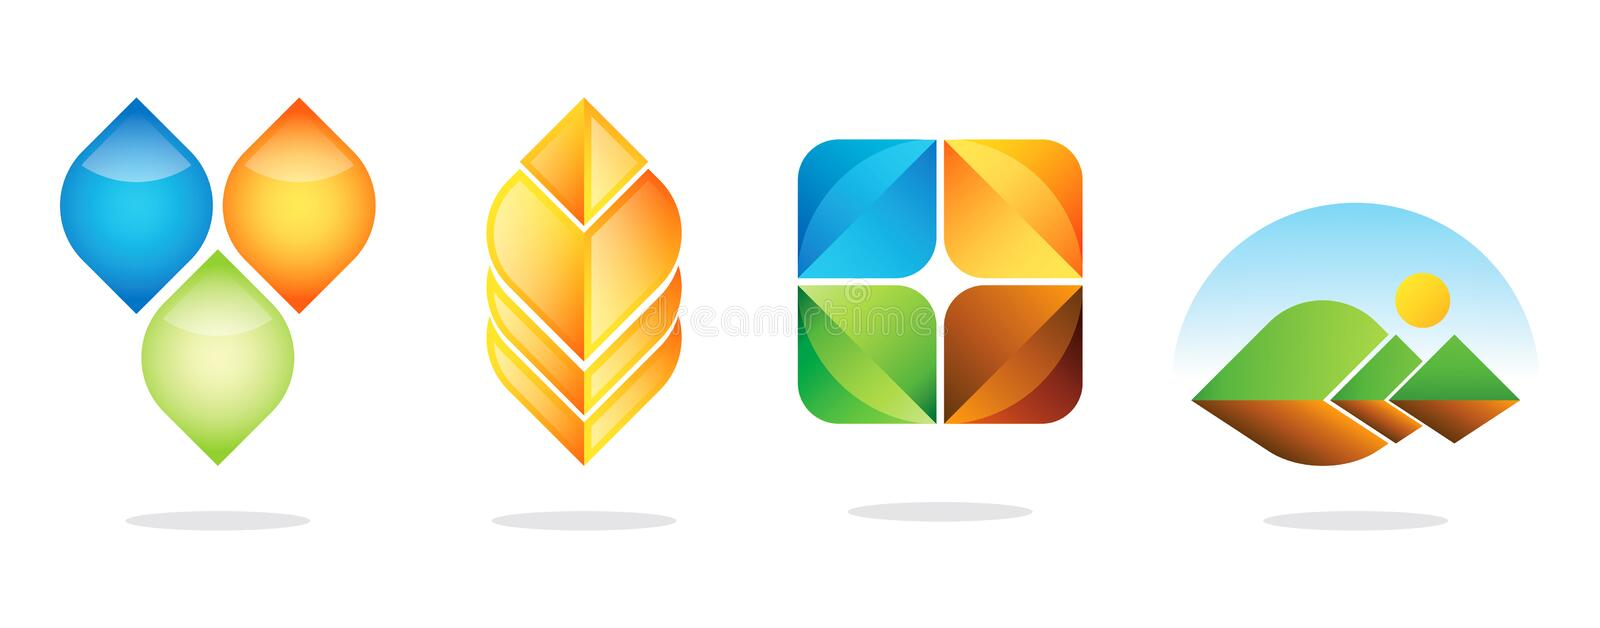 Best logo designs. A collection of four logo designs stock illustration